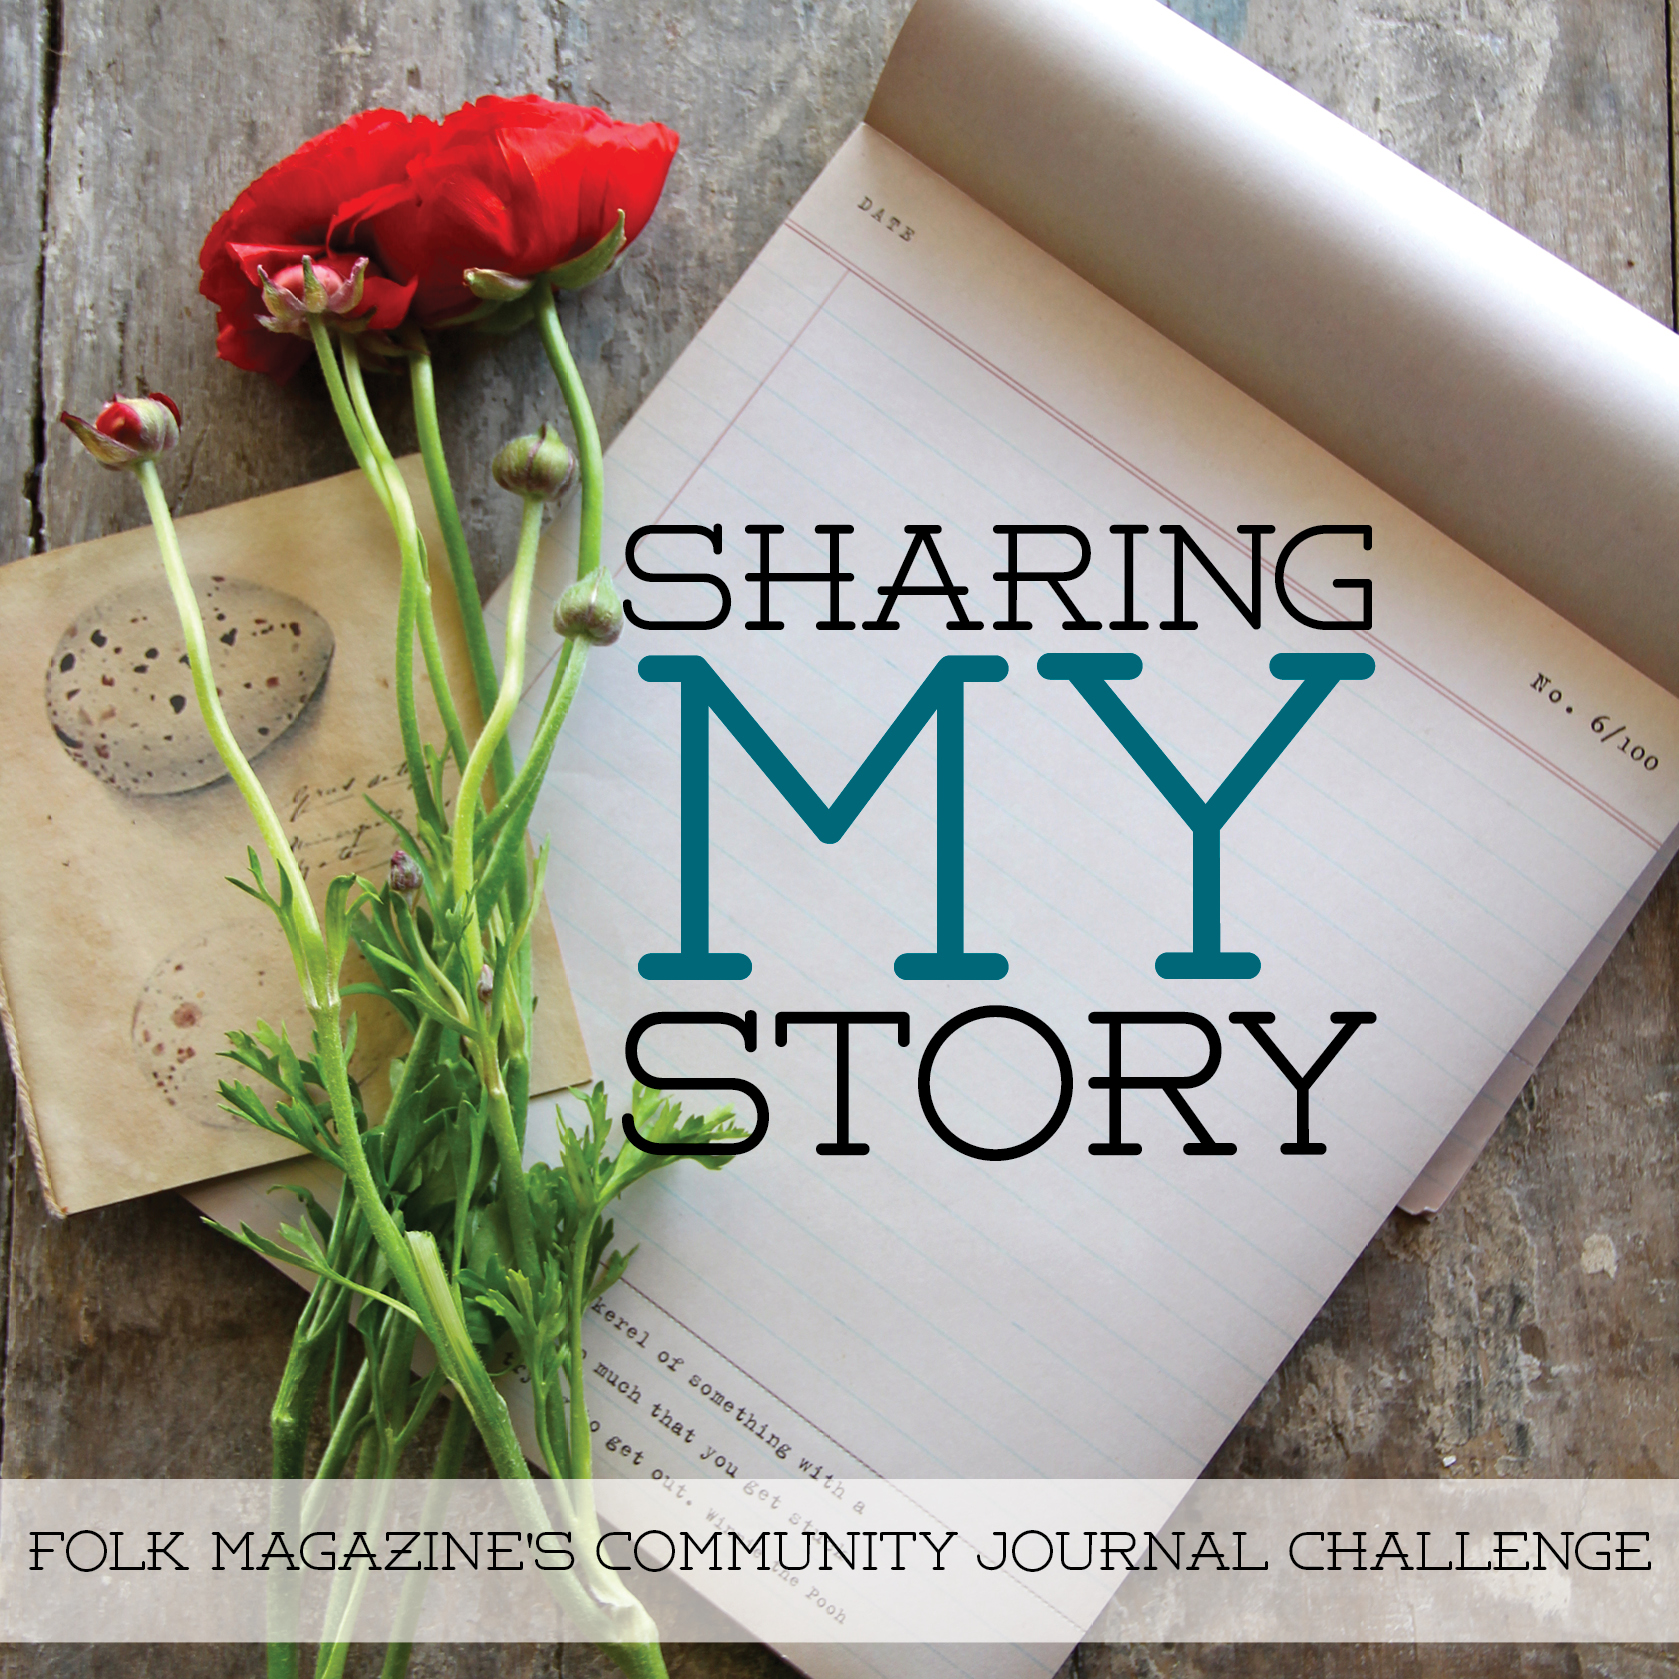 FOLK sharemystory